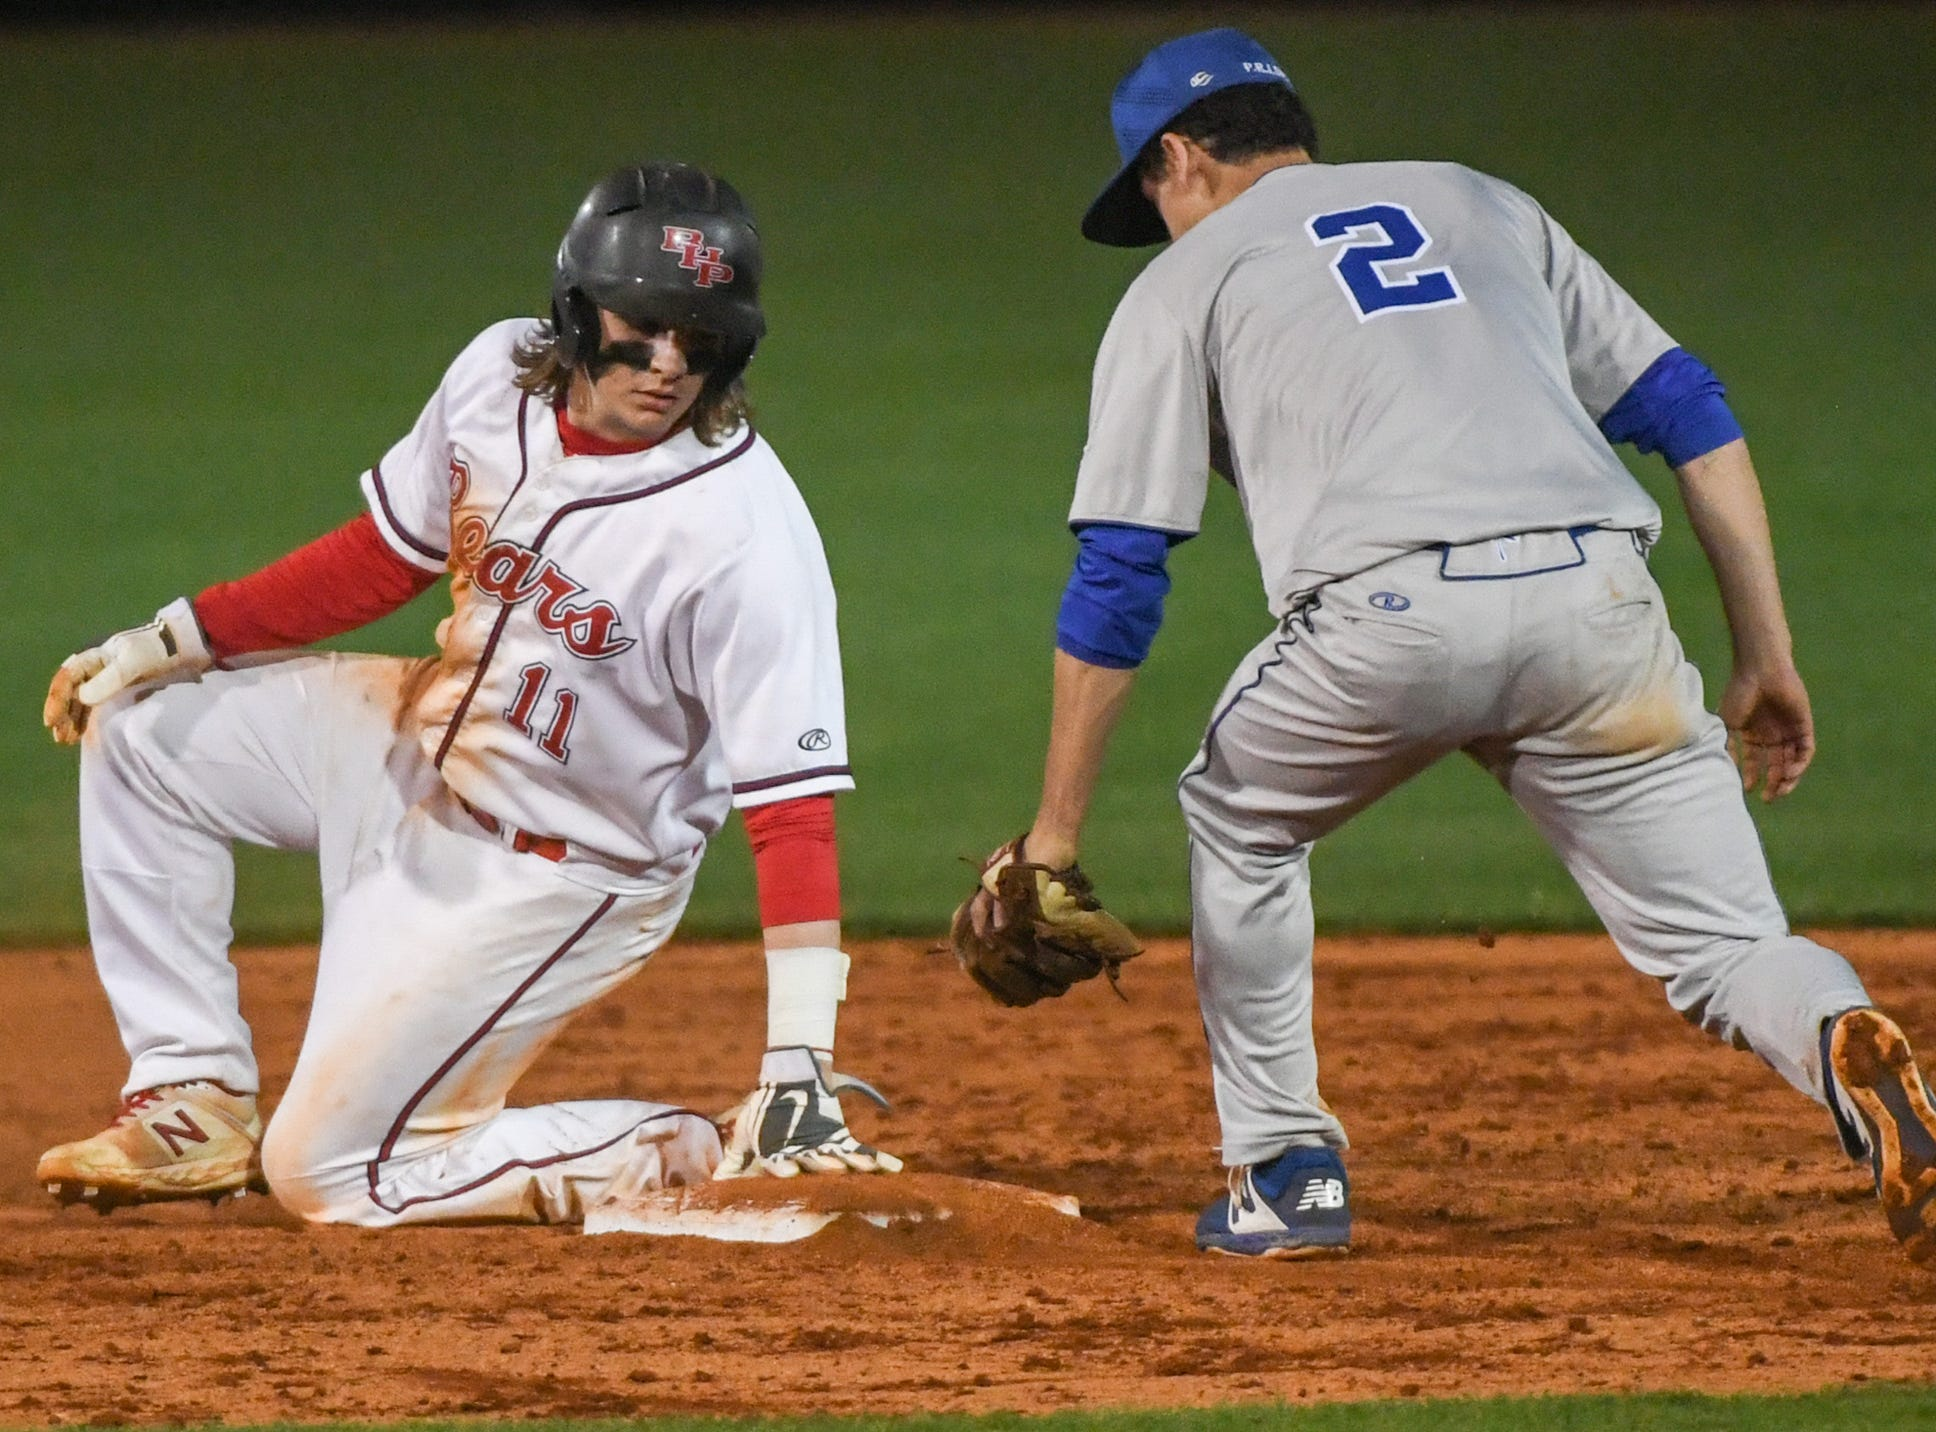 Wren secondbaseman Boyd Gambrell (2) sees Belton-Honea Path senior Braden Galloway (11) safely at second base during the bottom of the sixth inning at Belton-Honea Path High School in Honea Path Wednesday, April 10, 2019.